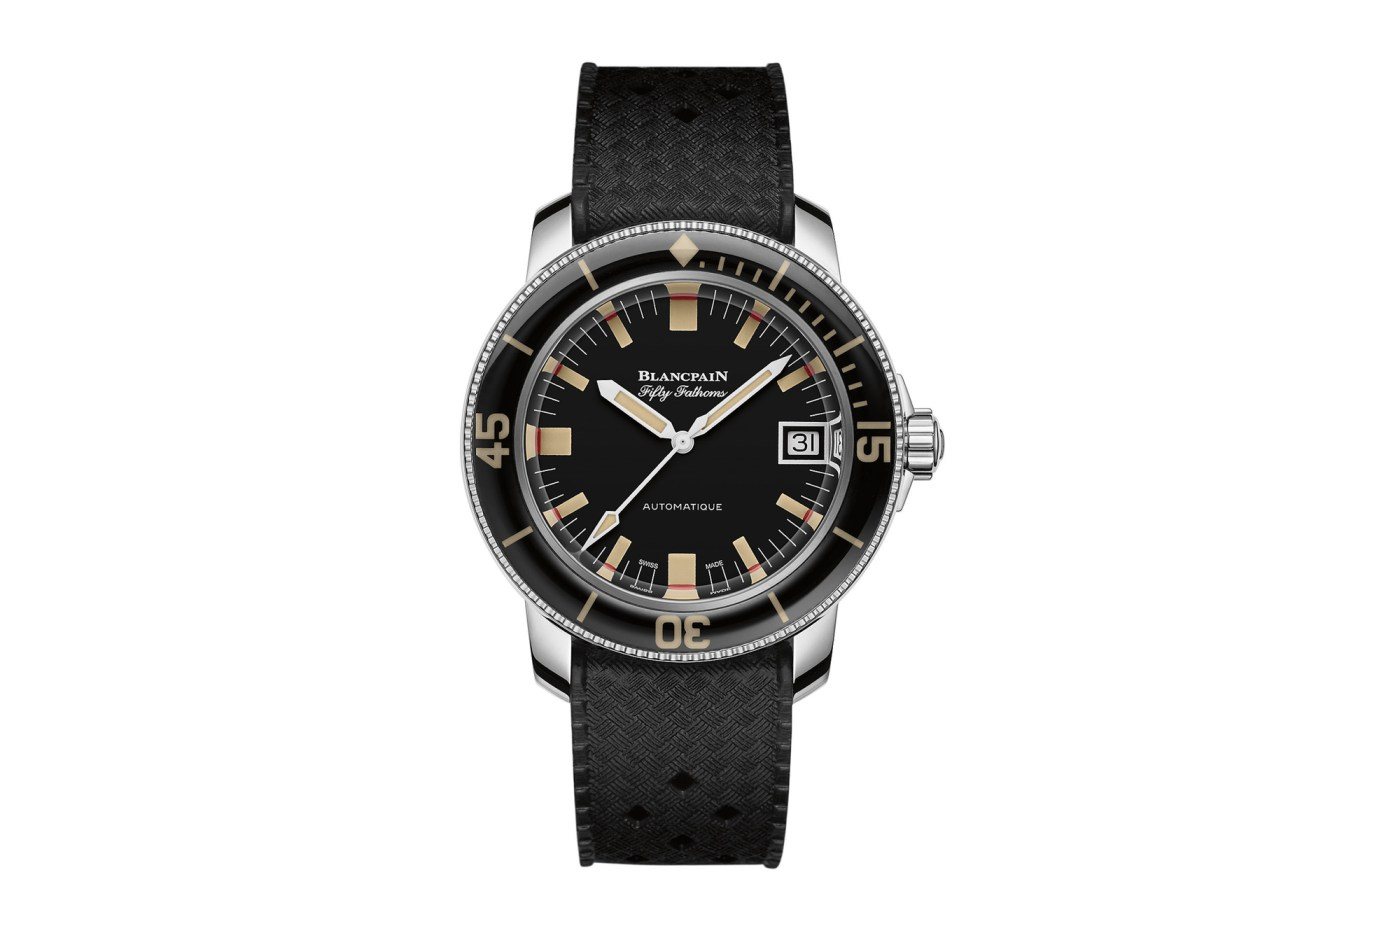 2019 Blancpain Fifty Fathoms Barakuda Limited Edition front side